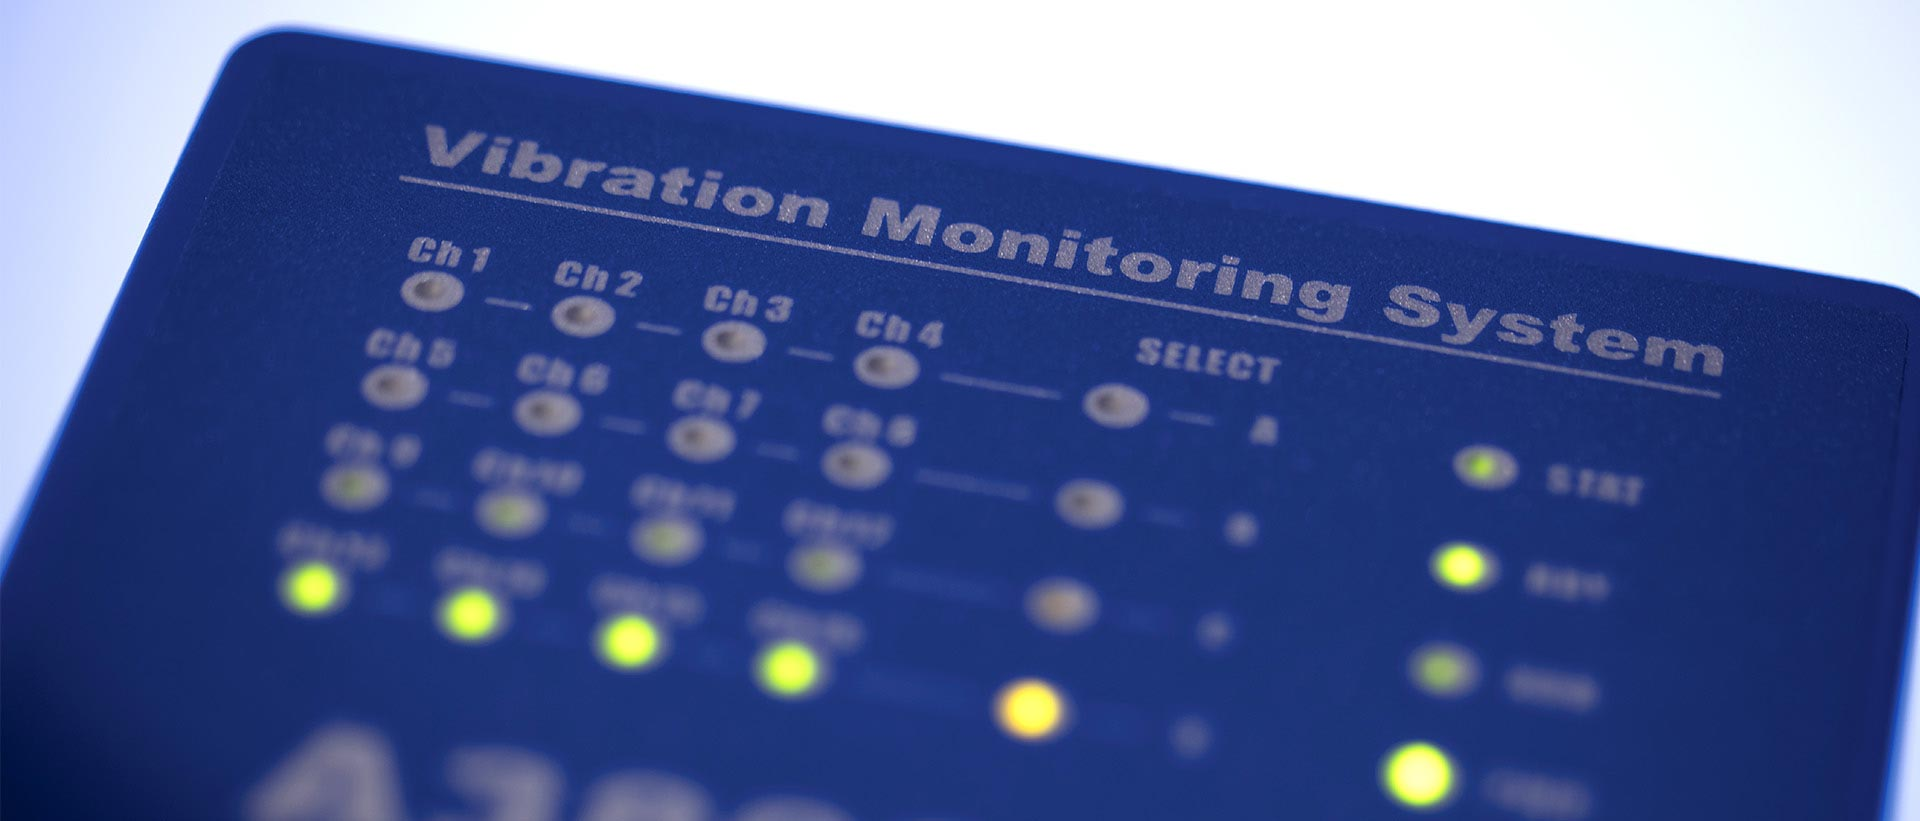 On-line monitoring